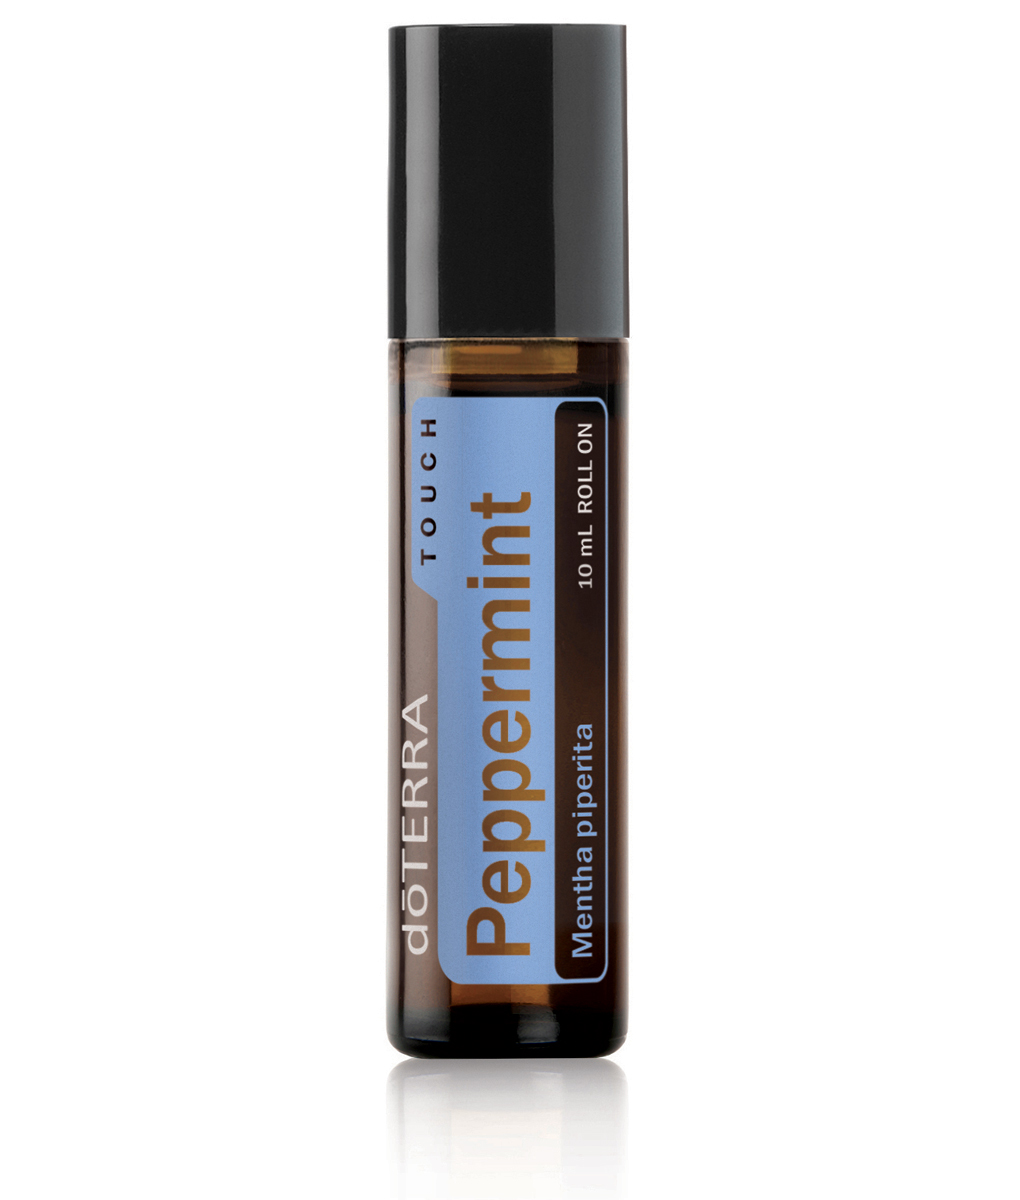 Product of the Month - Peppermint Touch